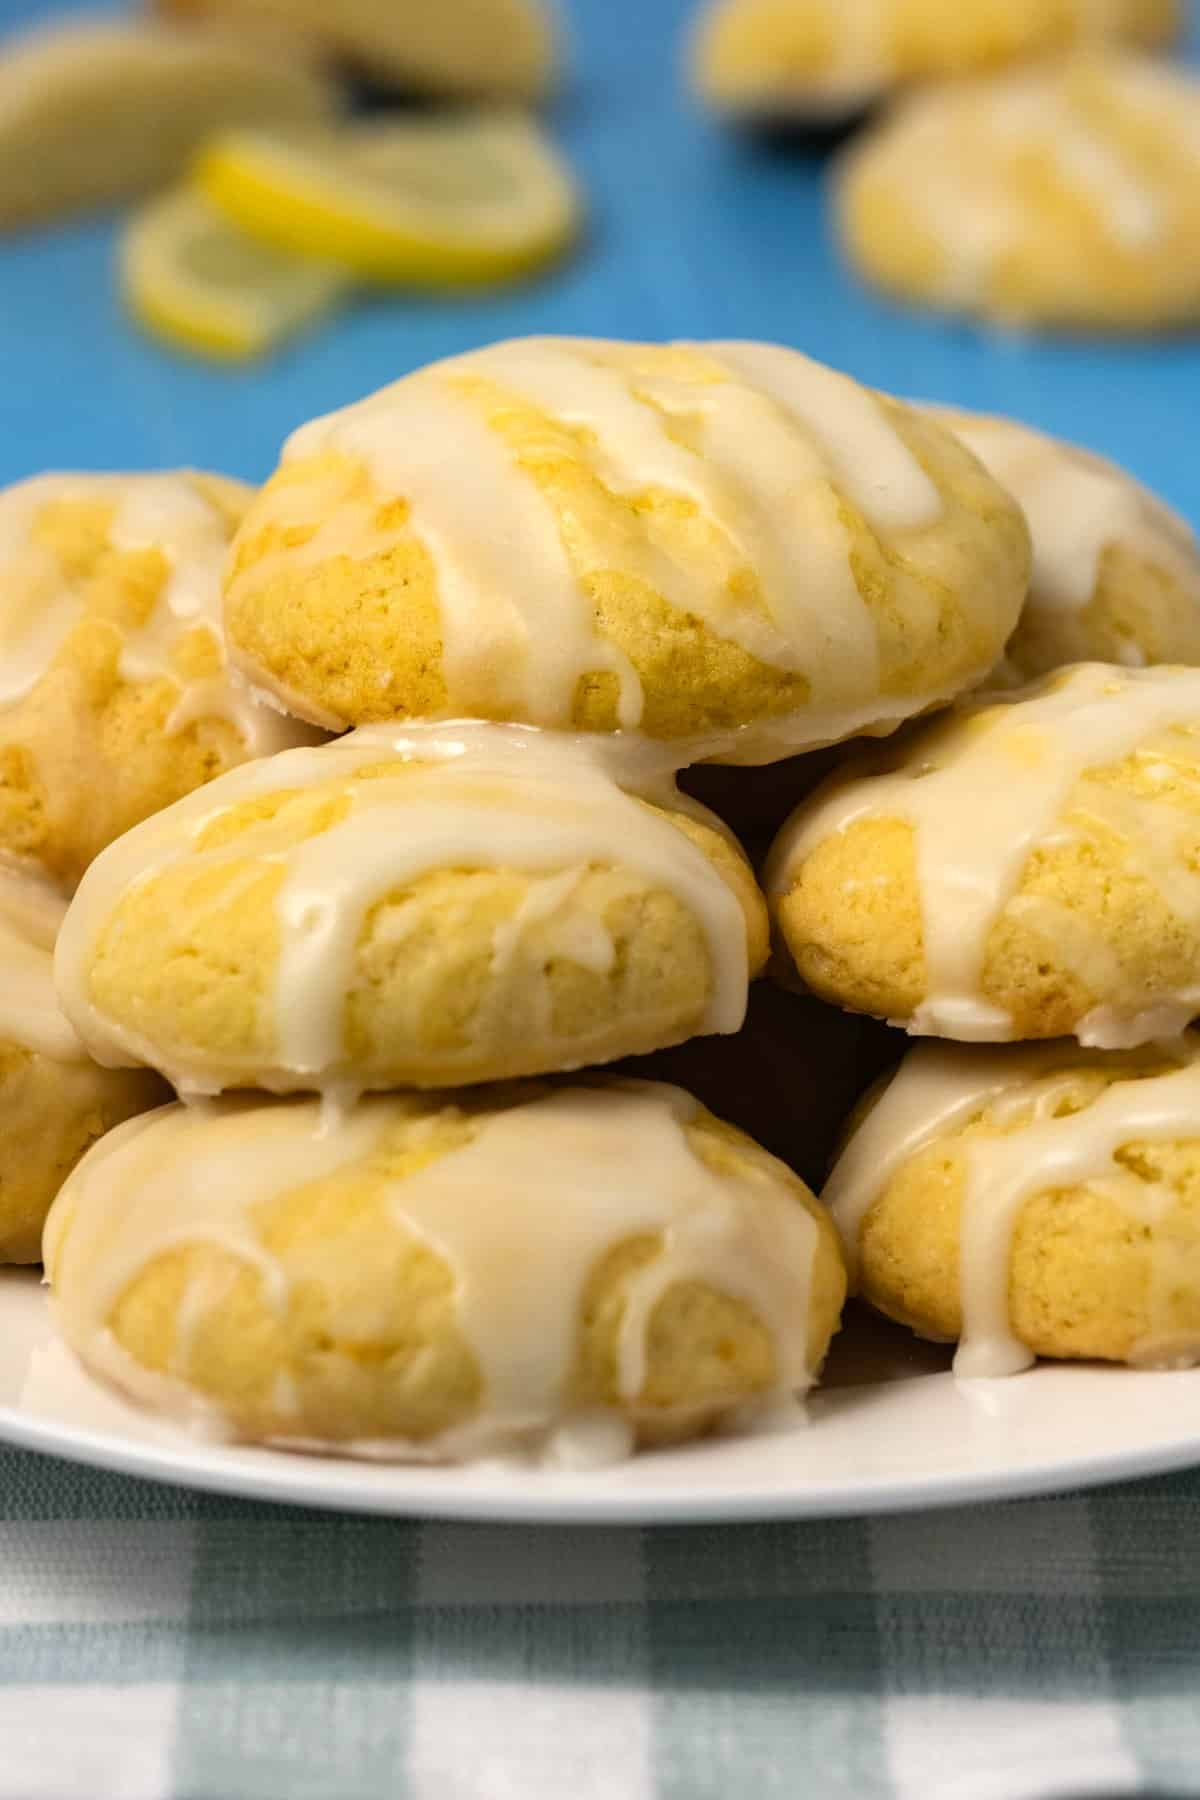 A stack of lemon cookies on a white plate.